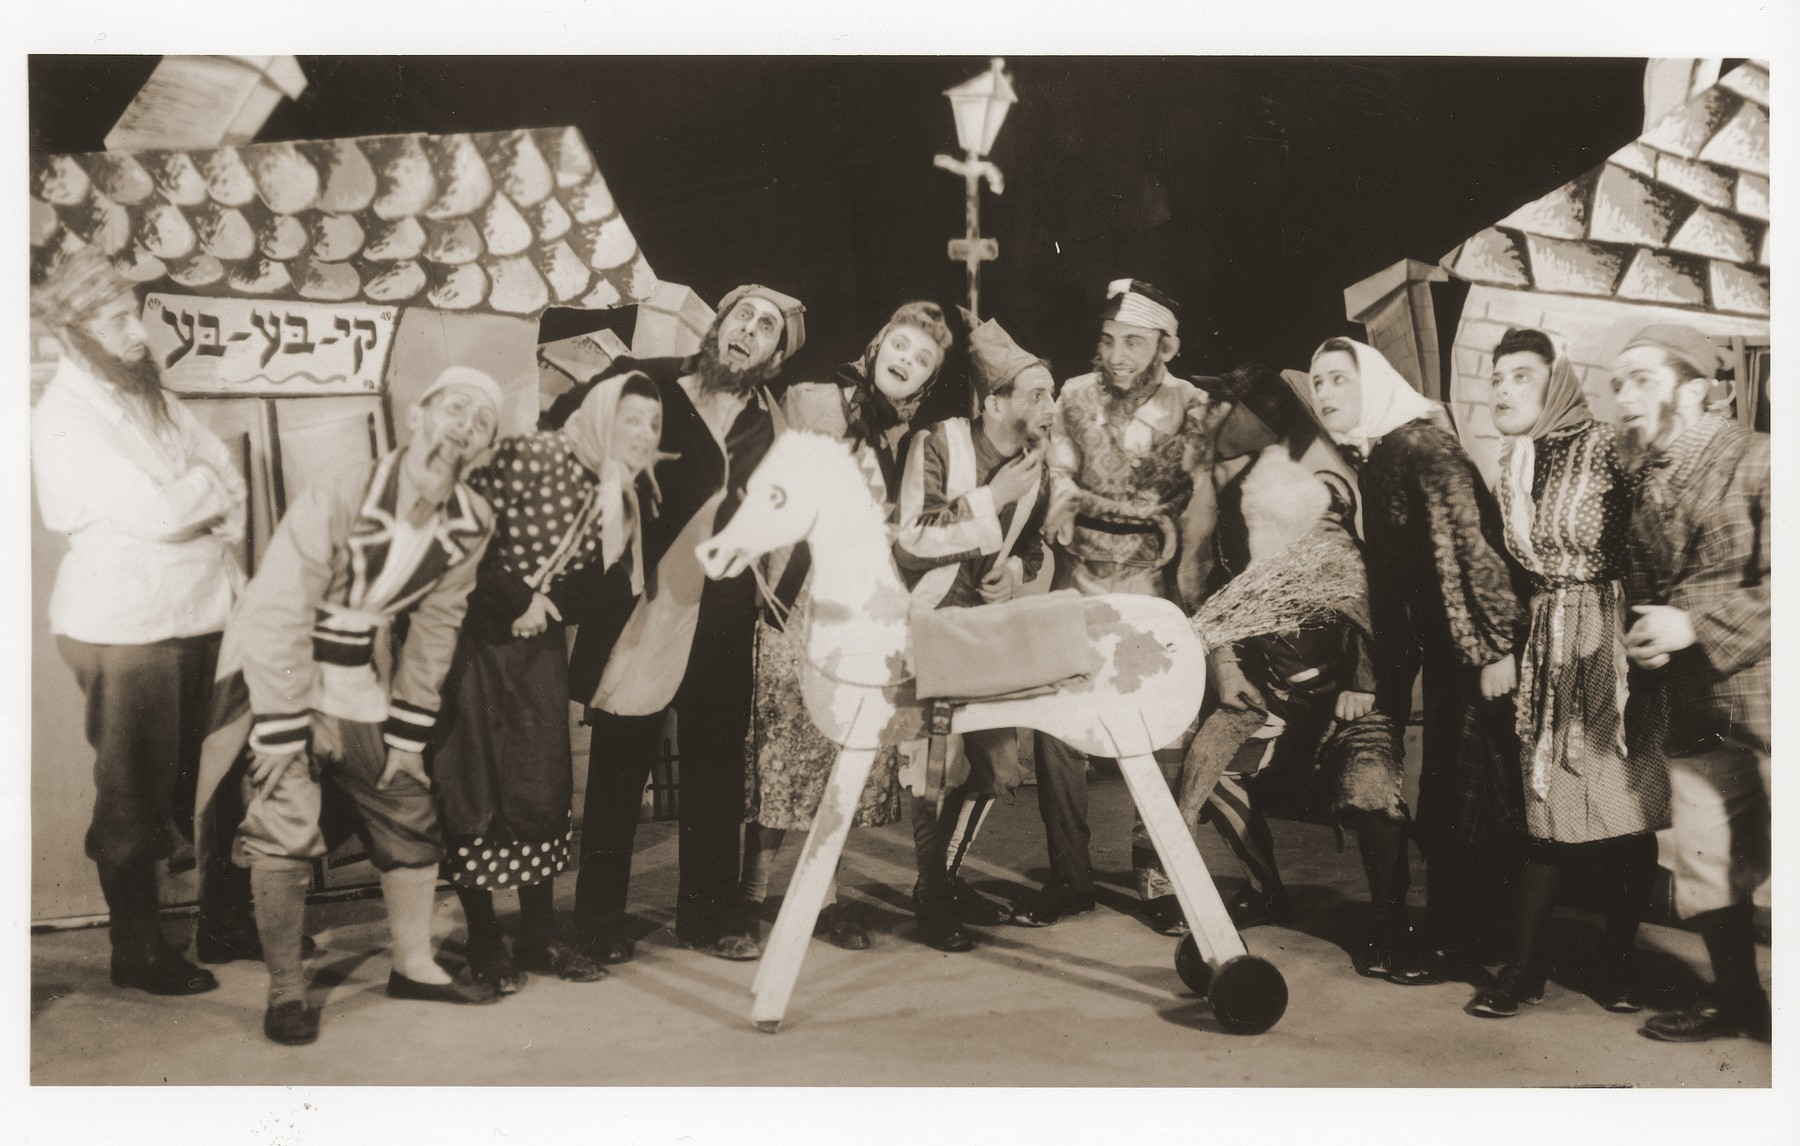 Leah Fischer (third from the right) acts in a performance of Tevye in the Feldafing displaced persons camp.  Also pictured are Chaim Einhorn, second from left and Sonia Flato, fifth from left